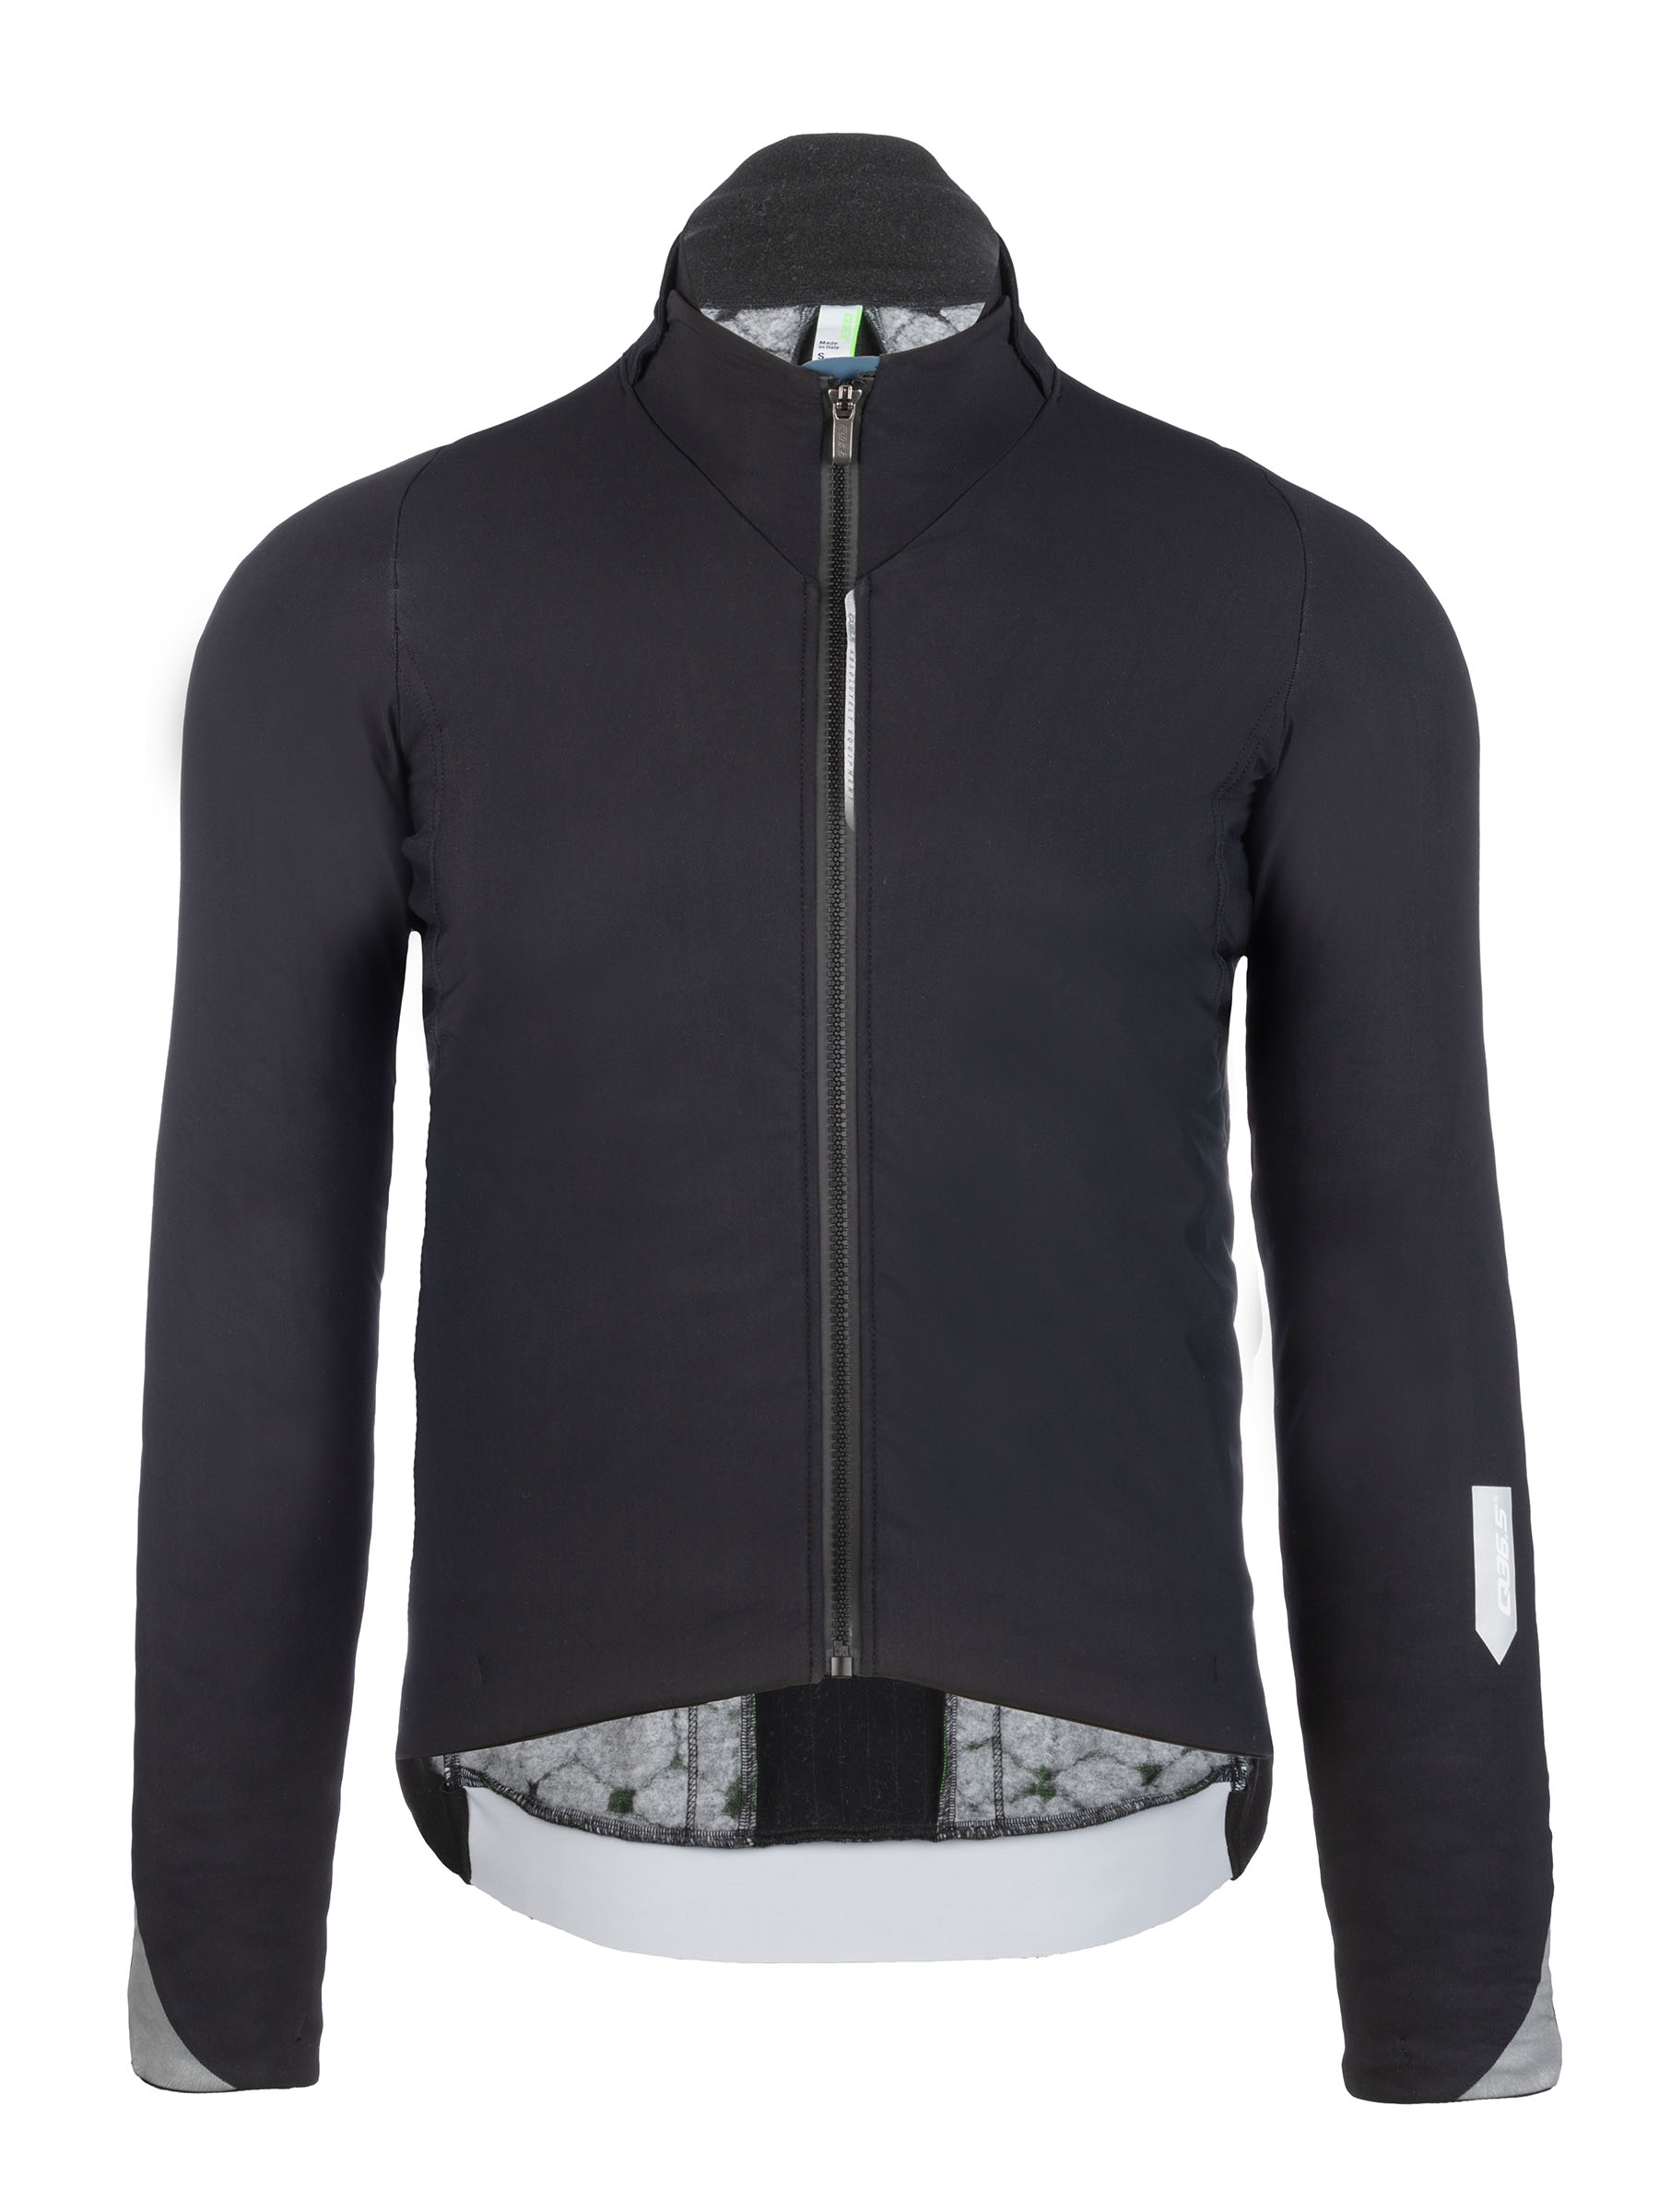 Mens cycling thermal jacket Interval Termica - 051.2 - black